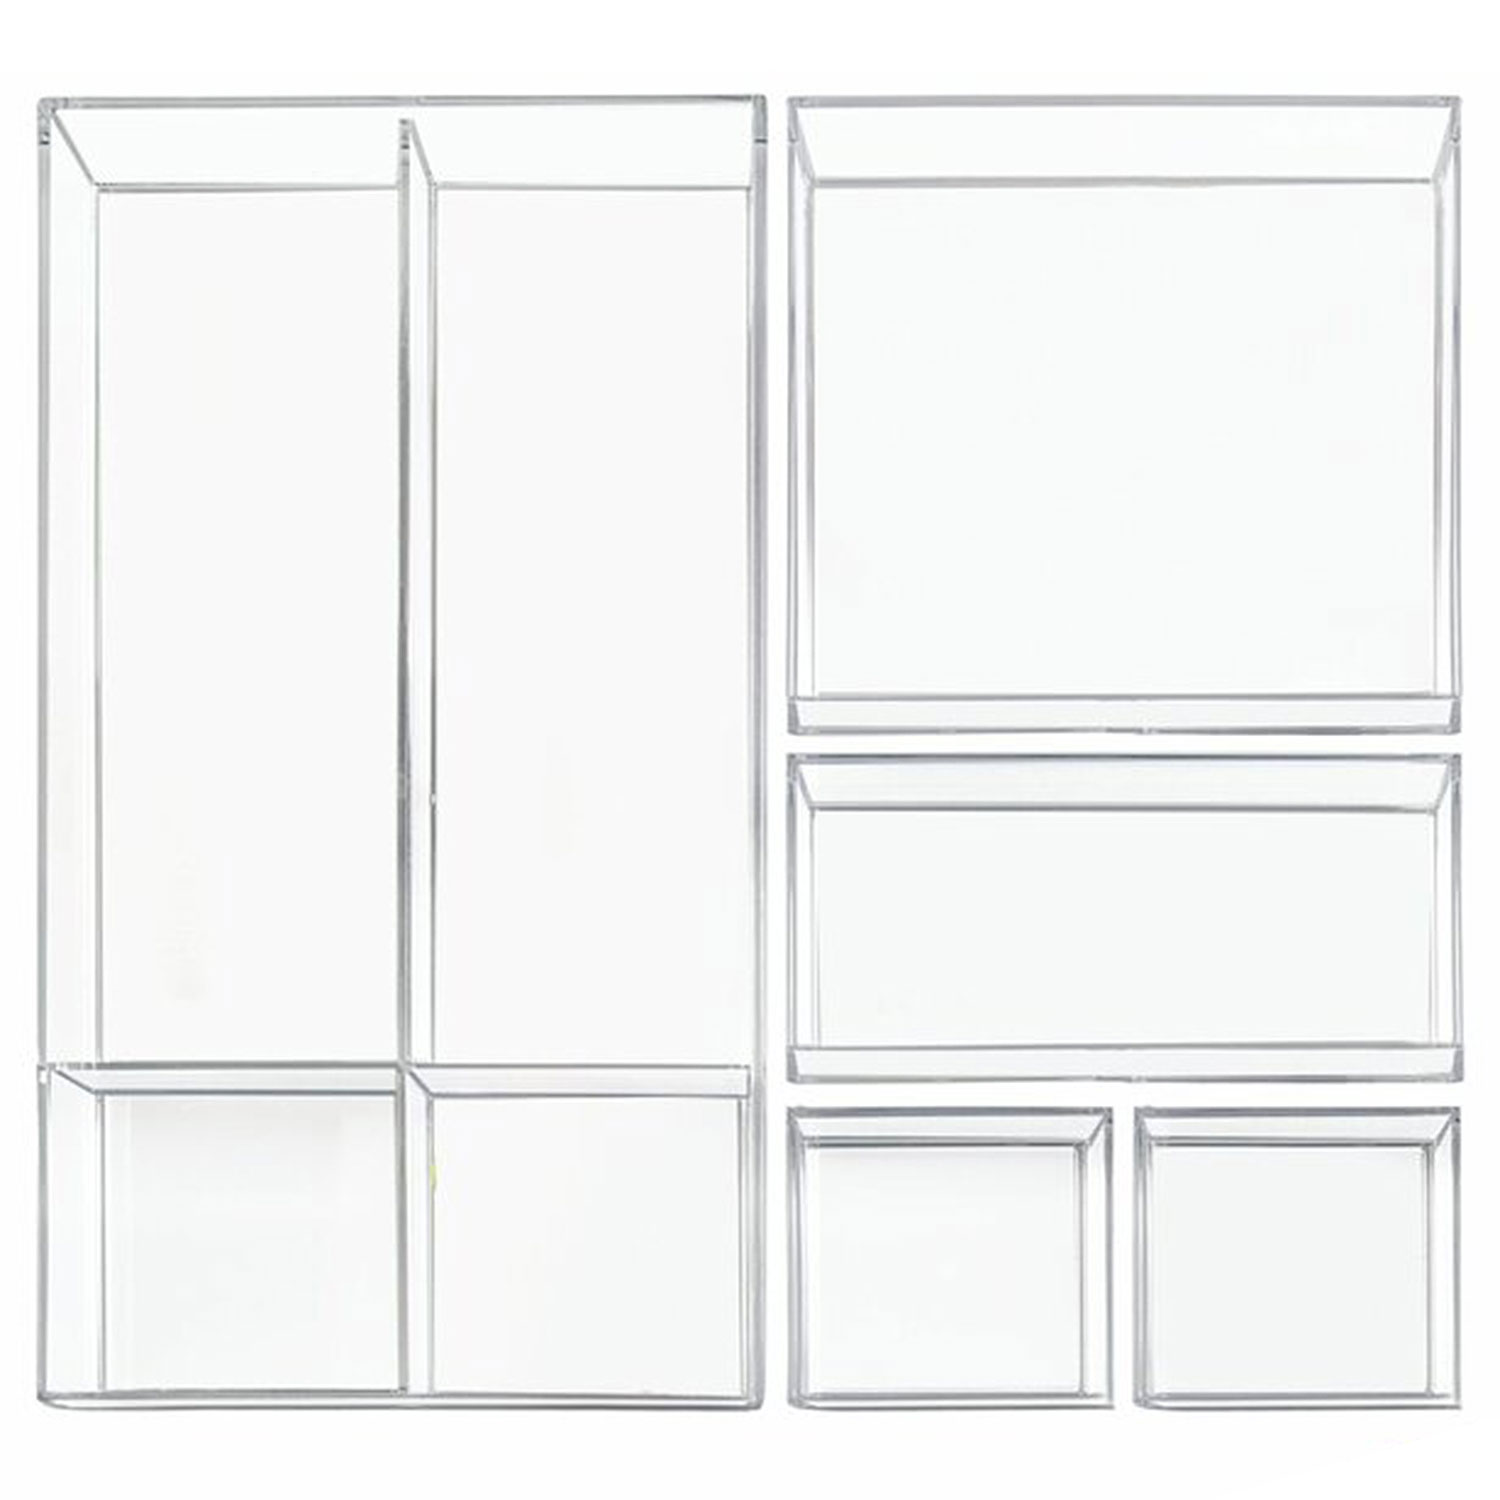 wayfair dotted line collection